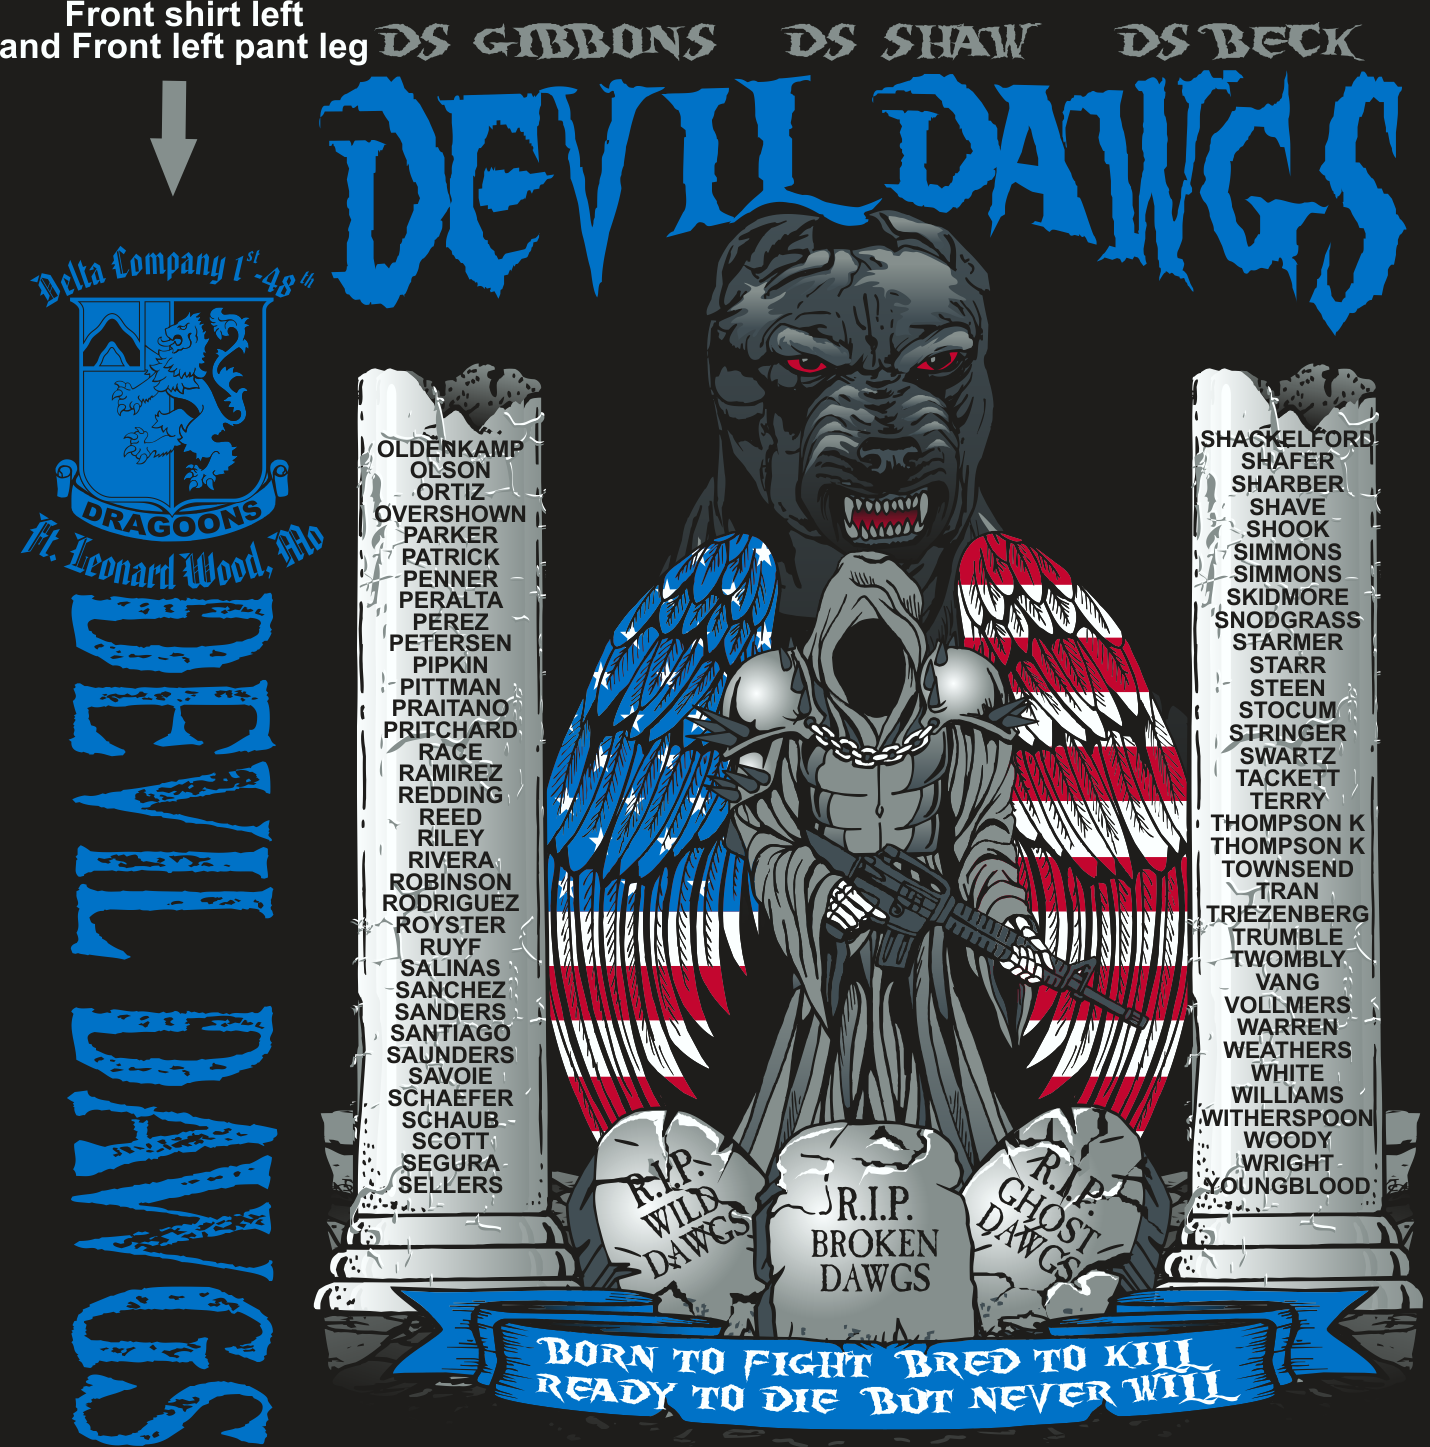 DELTA 1-48 DEVIL DAWGS GRADUATING DAY 8-20-2015 digital